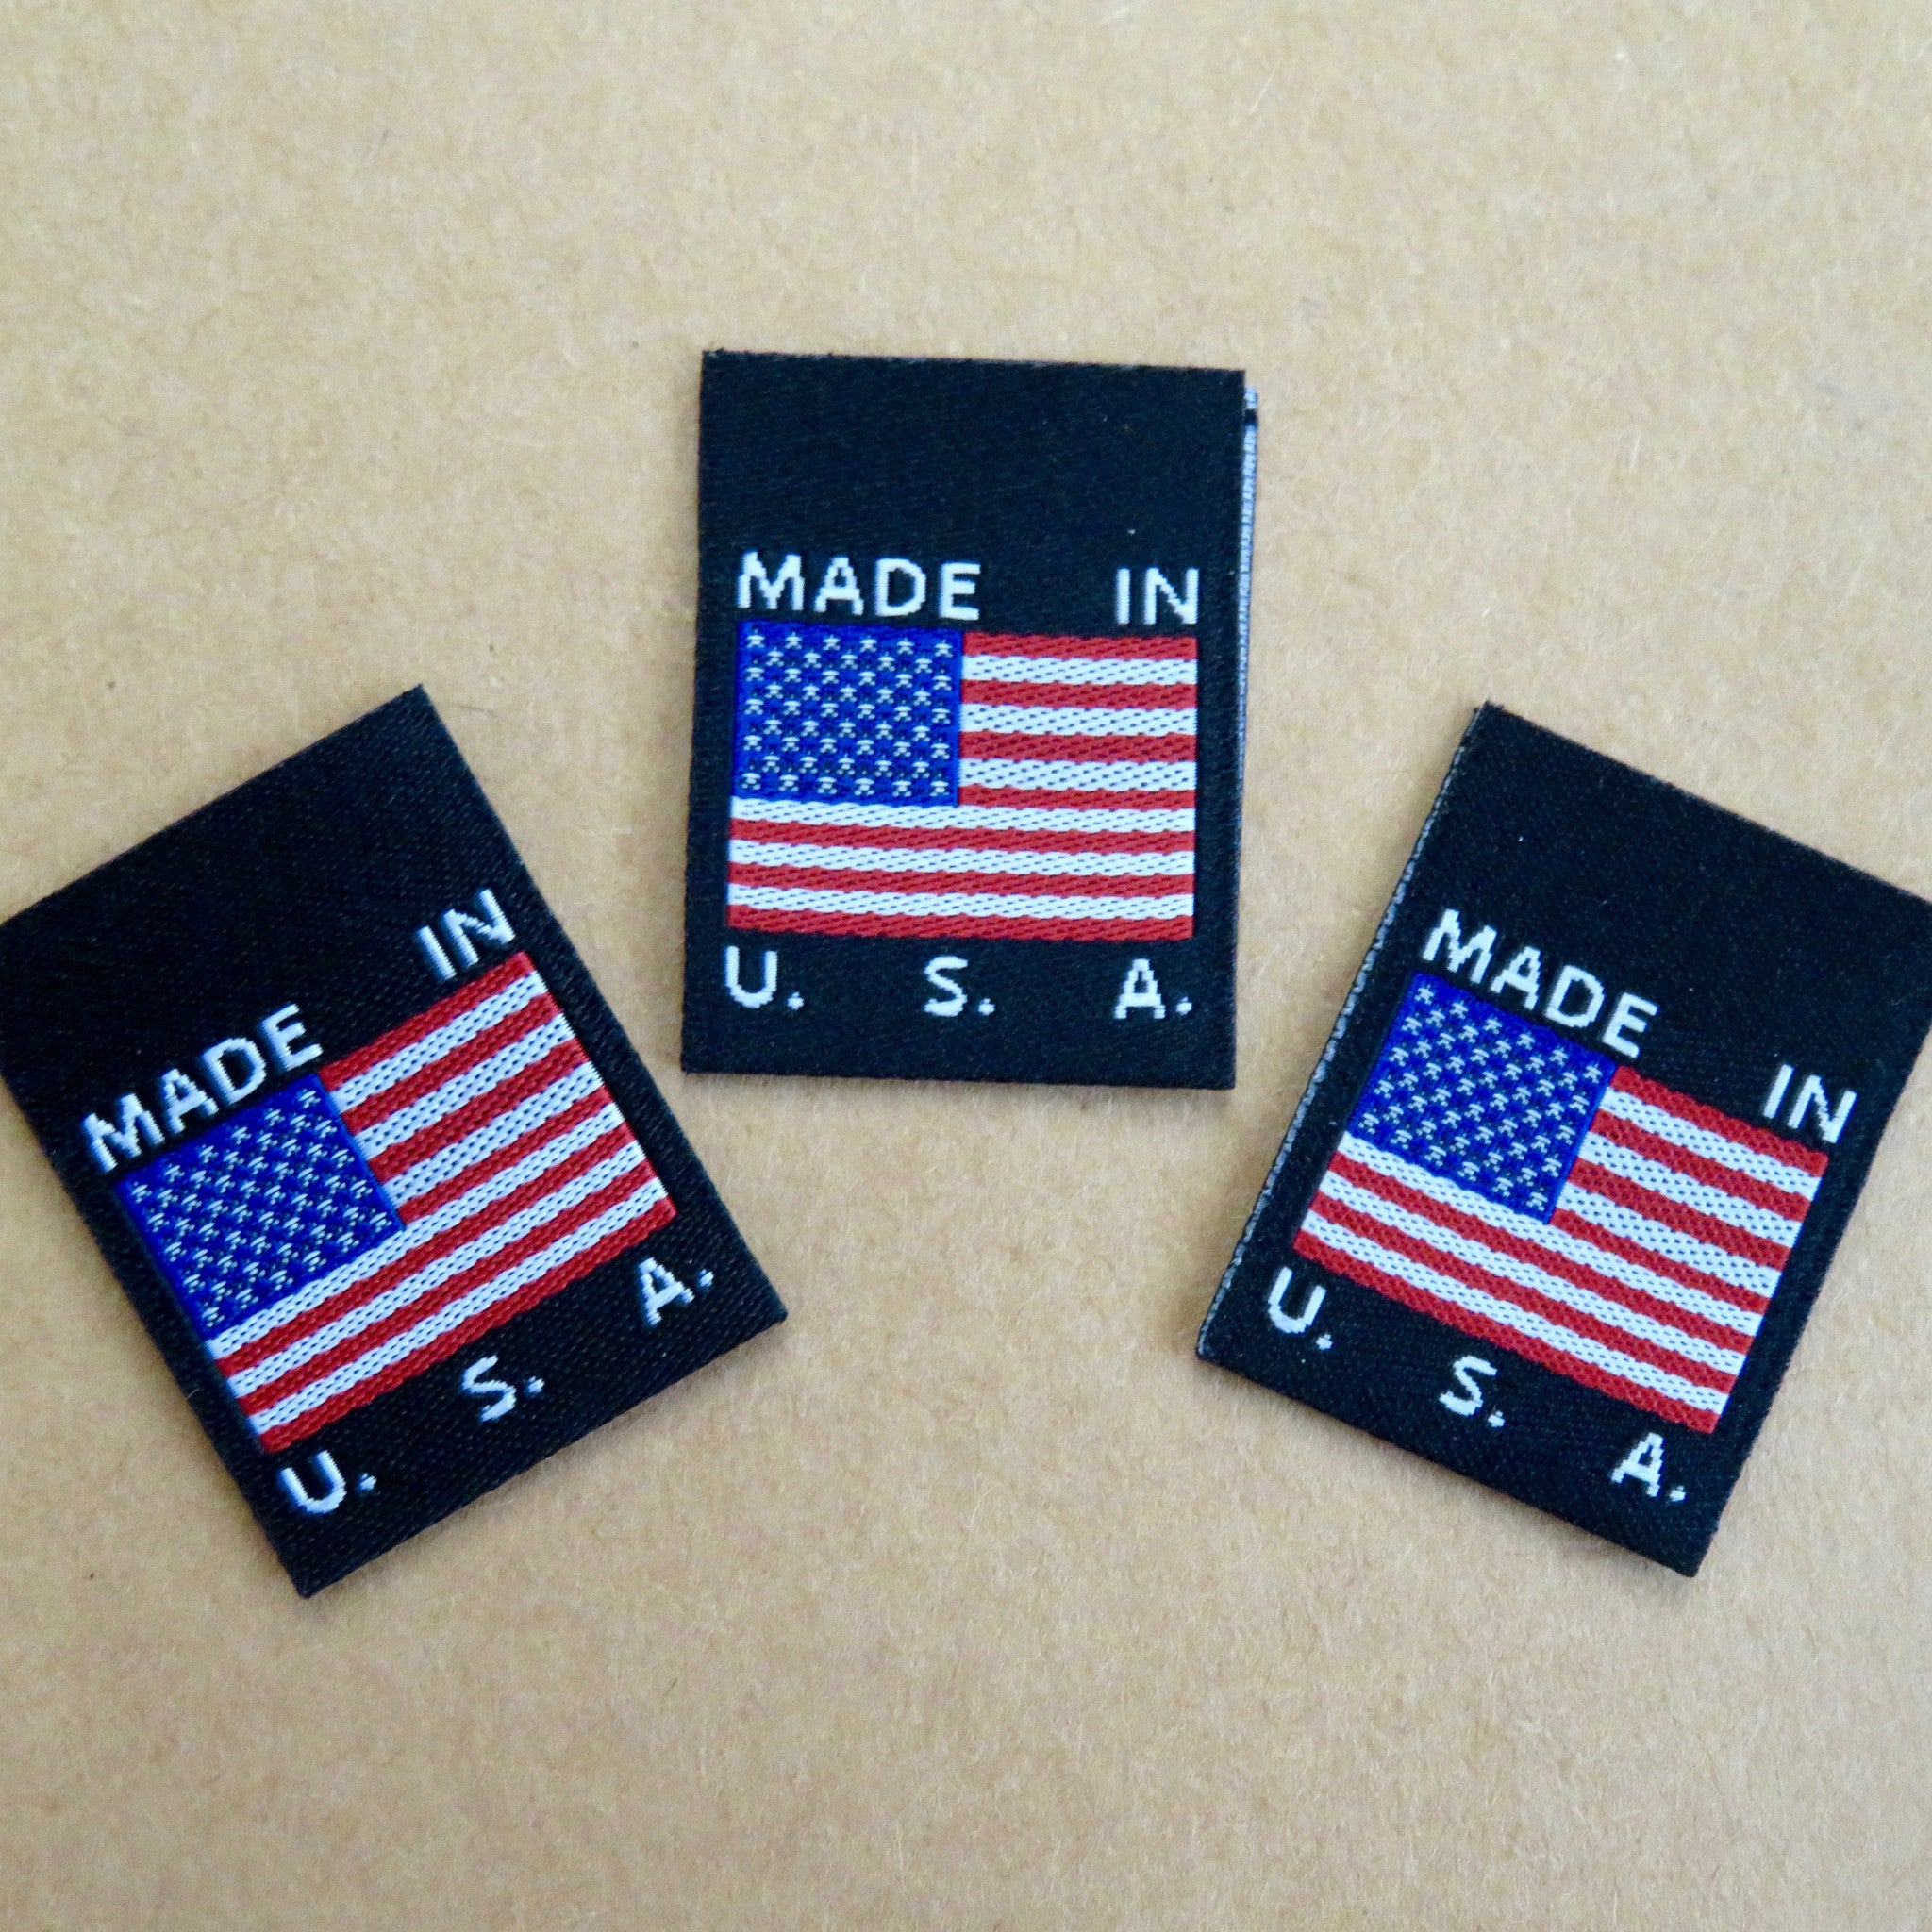 Made in usa clothing stores